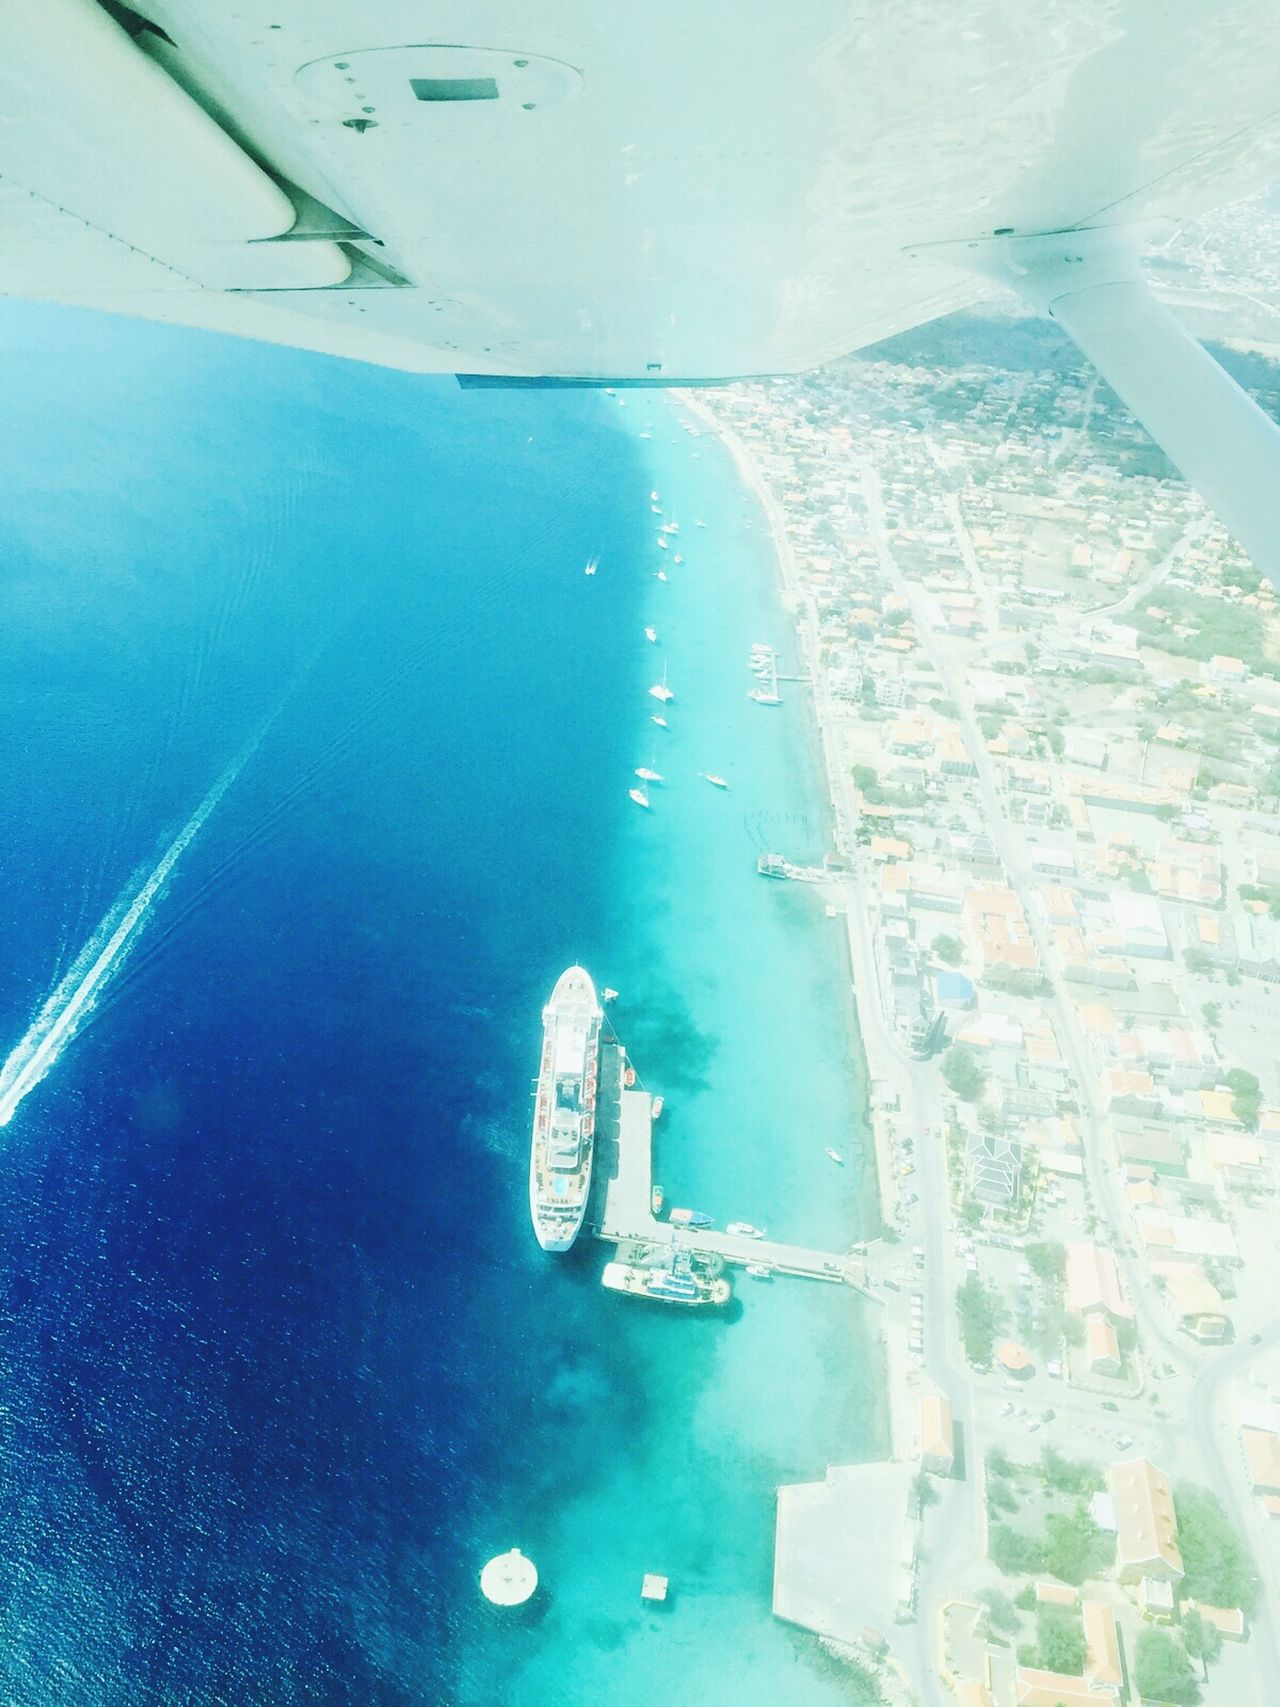 Bonaire Airplane Wing Airplaneview Airplane Wing Airplane Shot Taken From Airplane Taken From Above Blue Ocean Blue Sea Cruiseship Cruise Ship Kralendijk